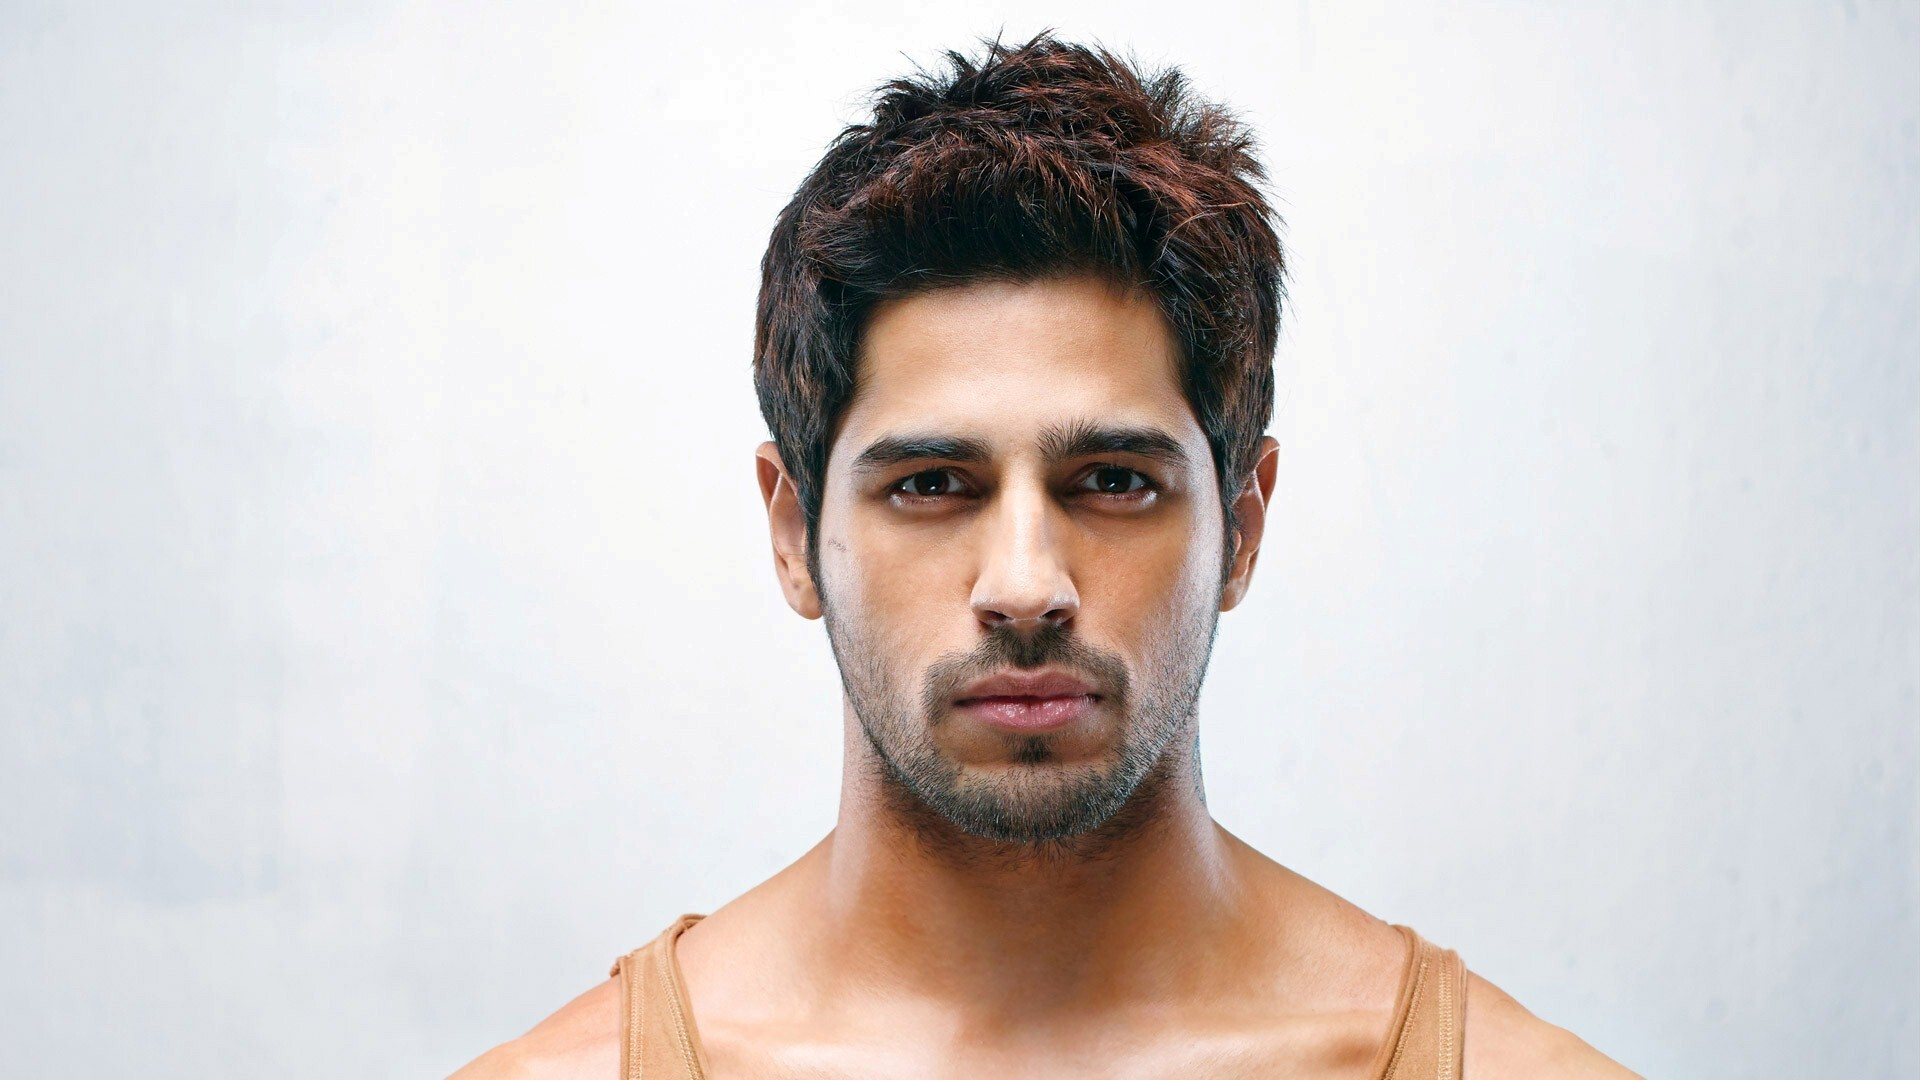 Actors Wallpapers Download Free: Sidharth Malhotra New Bollywood Handsome Actor HD